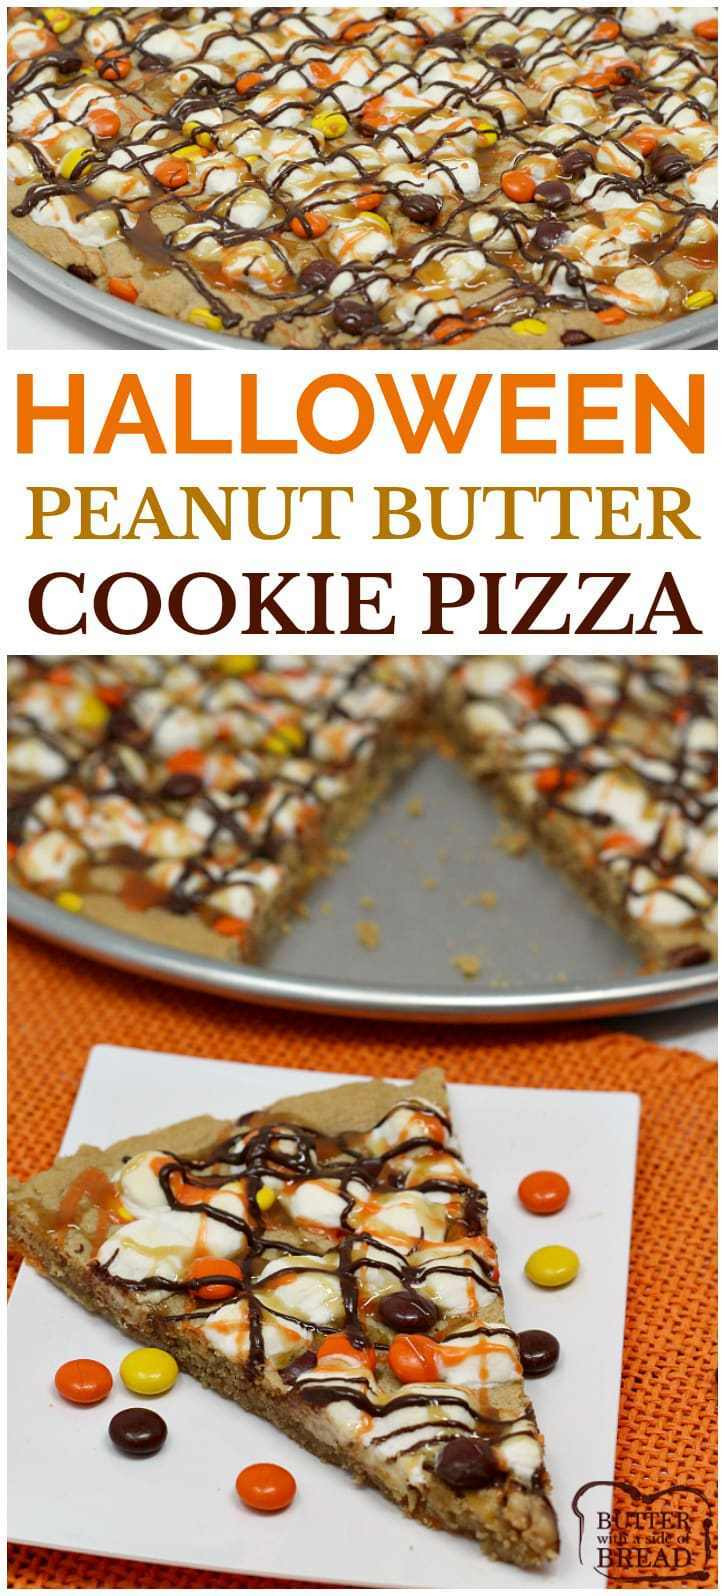 Halloween Peanut Butter Cookies  HALLOWEEN PEANUT BUTTER COOKIE PIZZA Butter with a Side